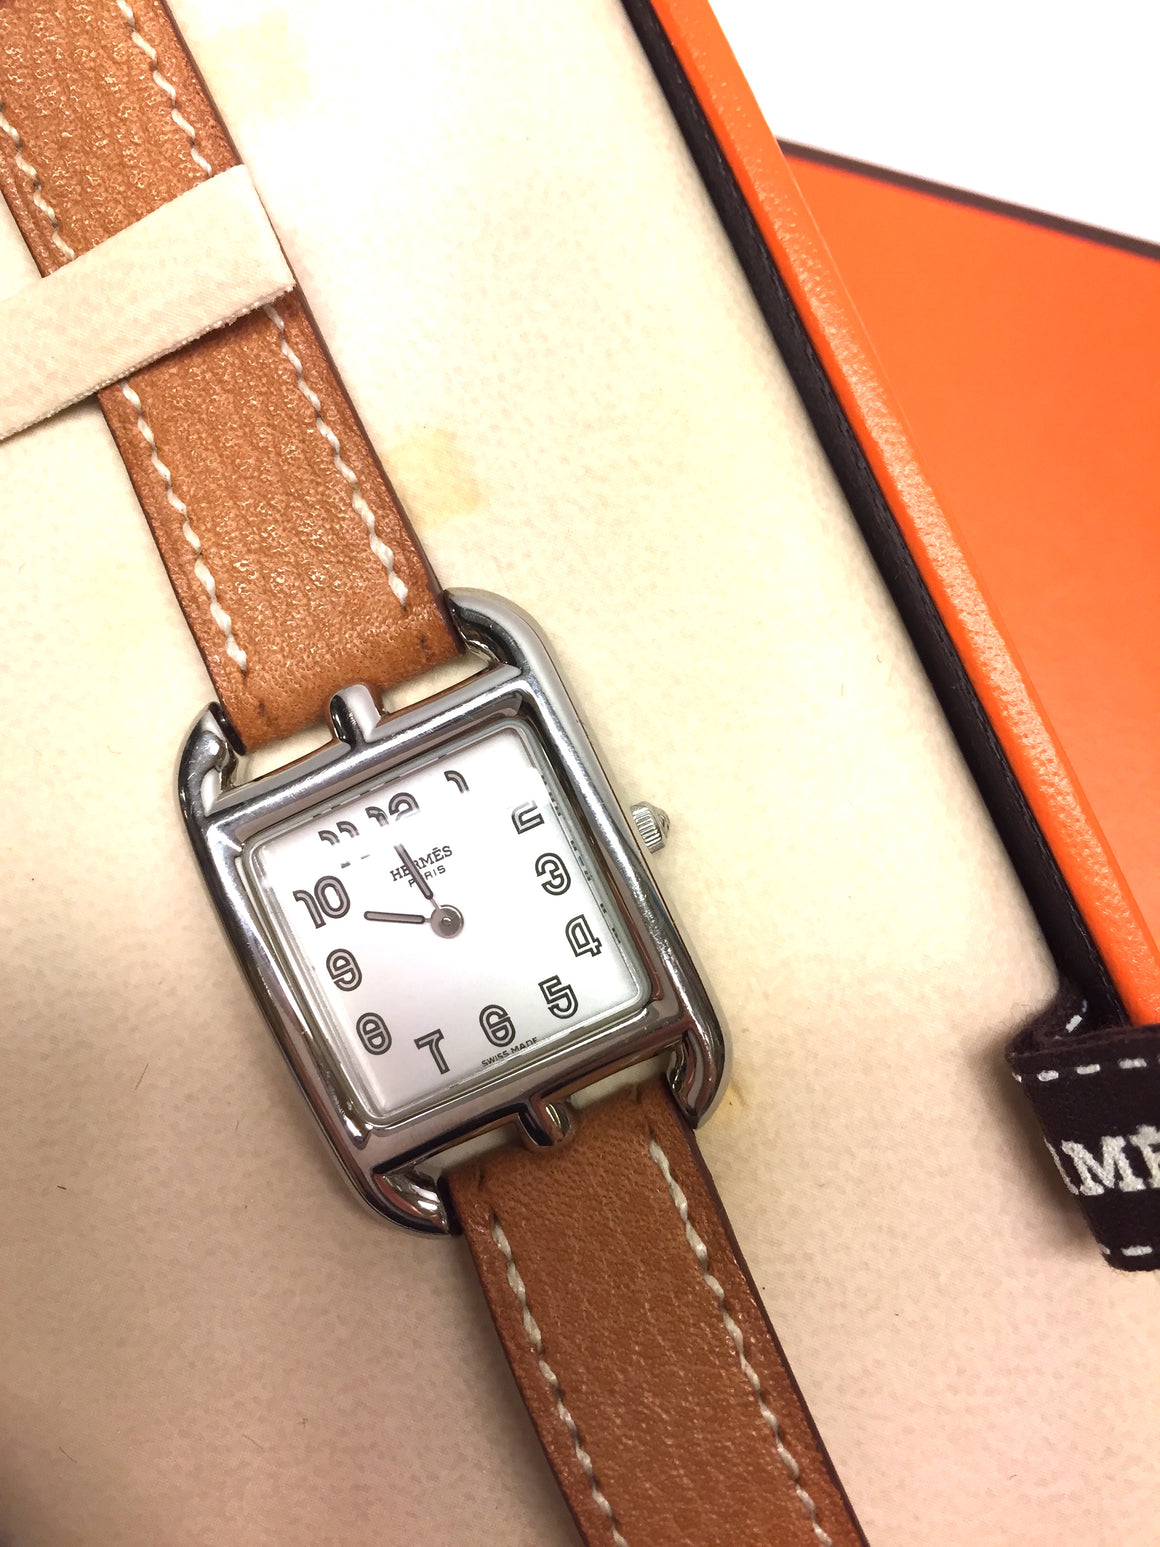 New HERMES CAPE COD Stainless Steel Watch w/Double Tan Wraparound Leather Strap